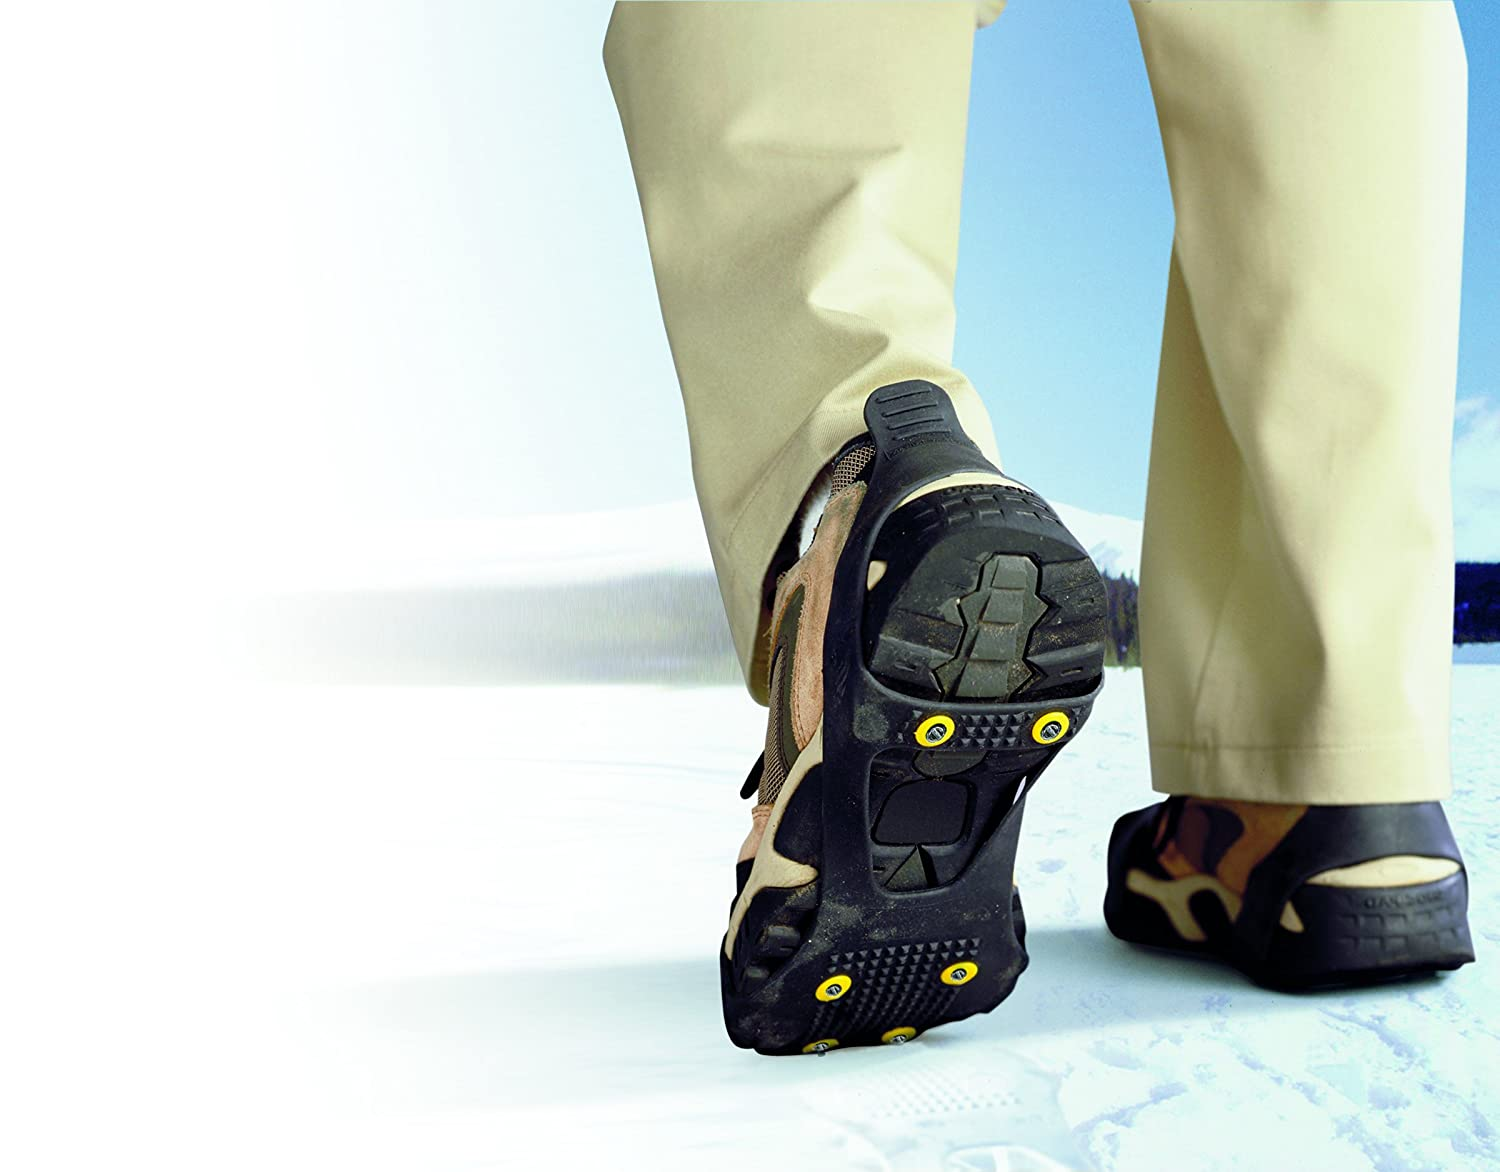 Perfect Solutions PS2545BK Black Large Perfect Solutions Ice Traction Slip-Ons Stretch-On Traction Footgear For Ice And Snow E /& B Giftware One Size